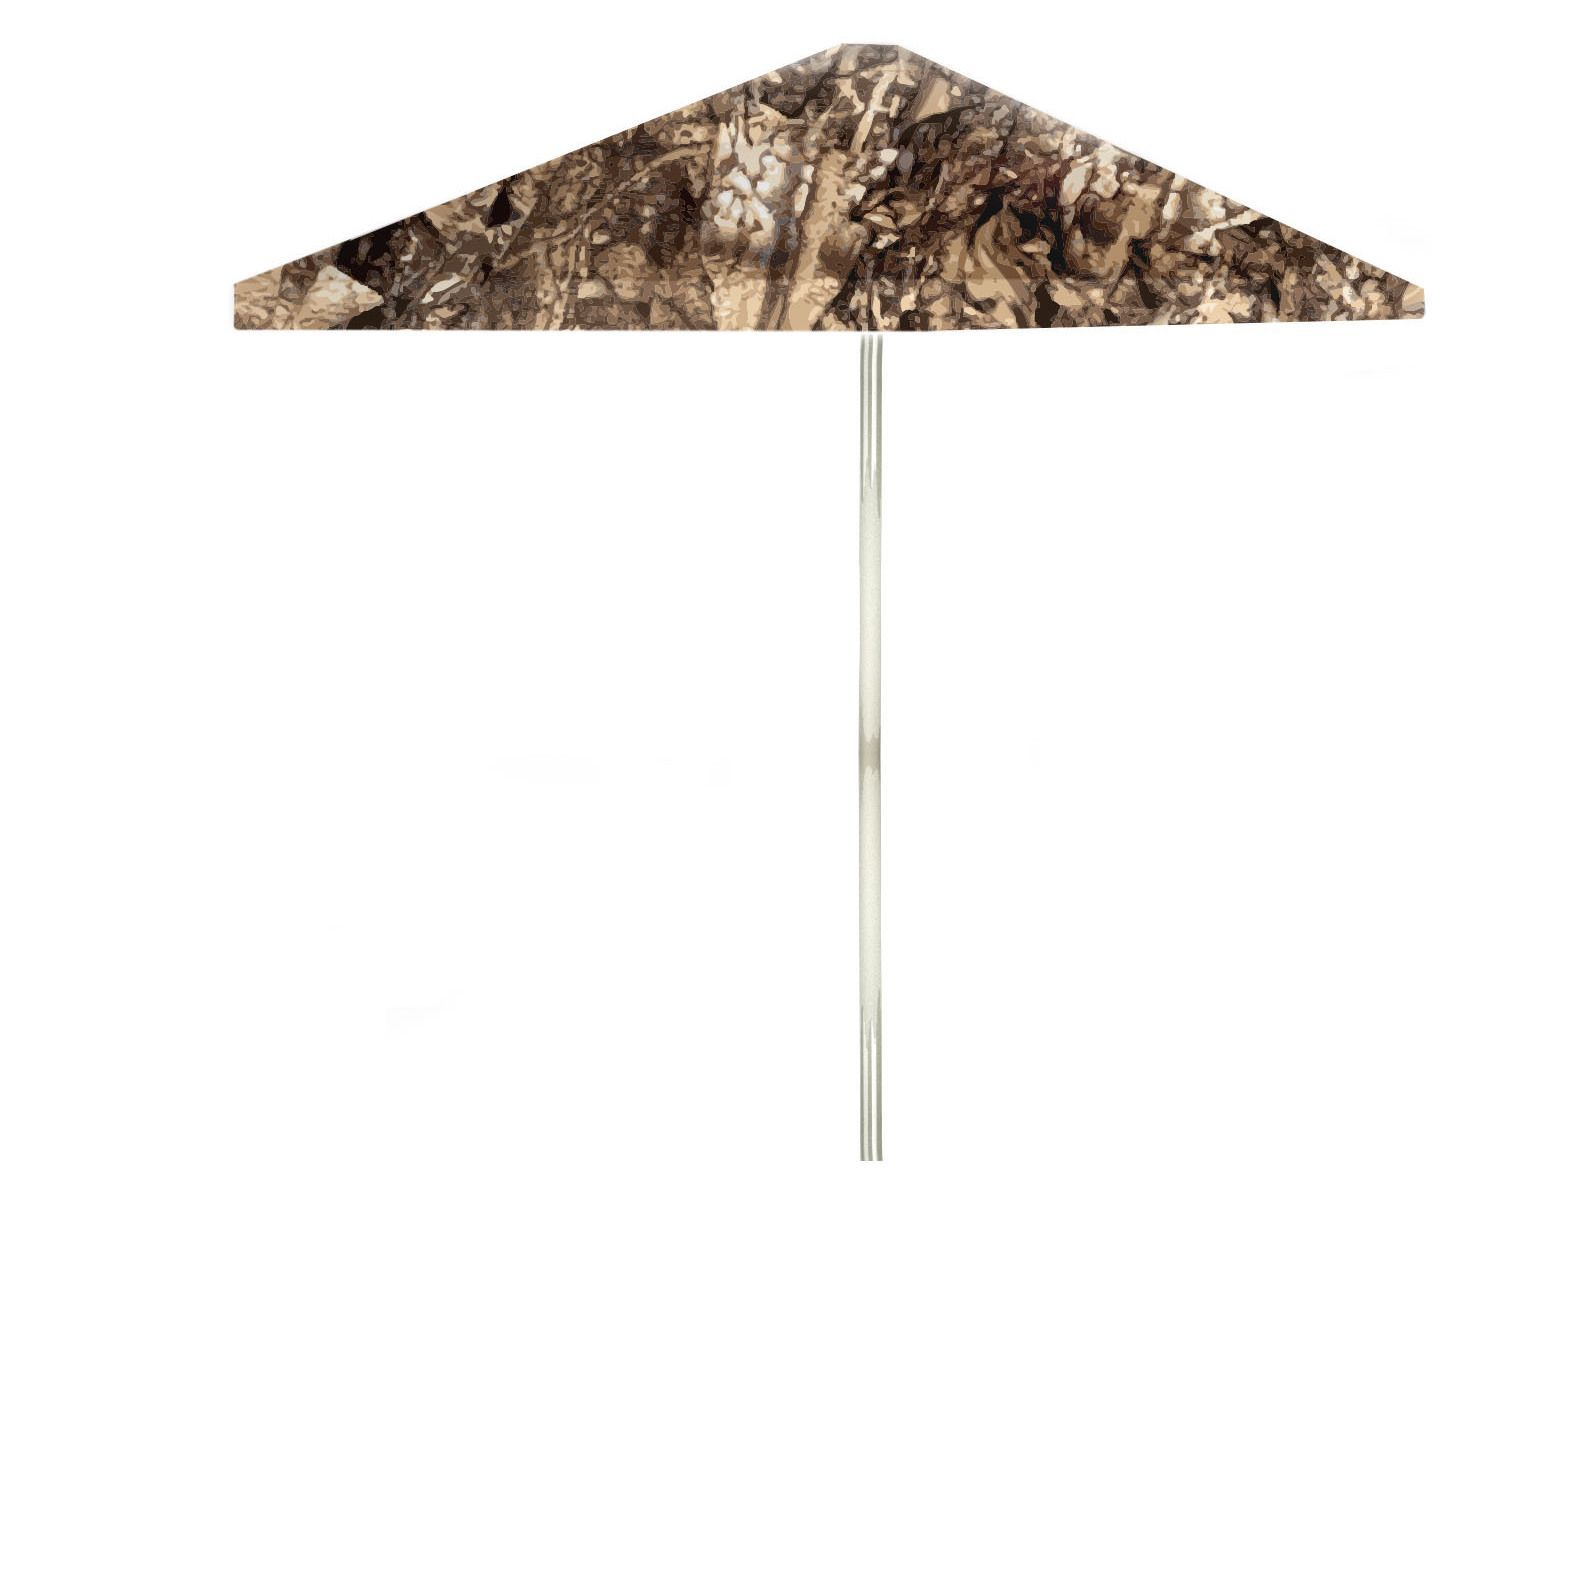 Best Of Times Camouflage Patio Umbrella Camoflauge Multi Polyester